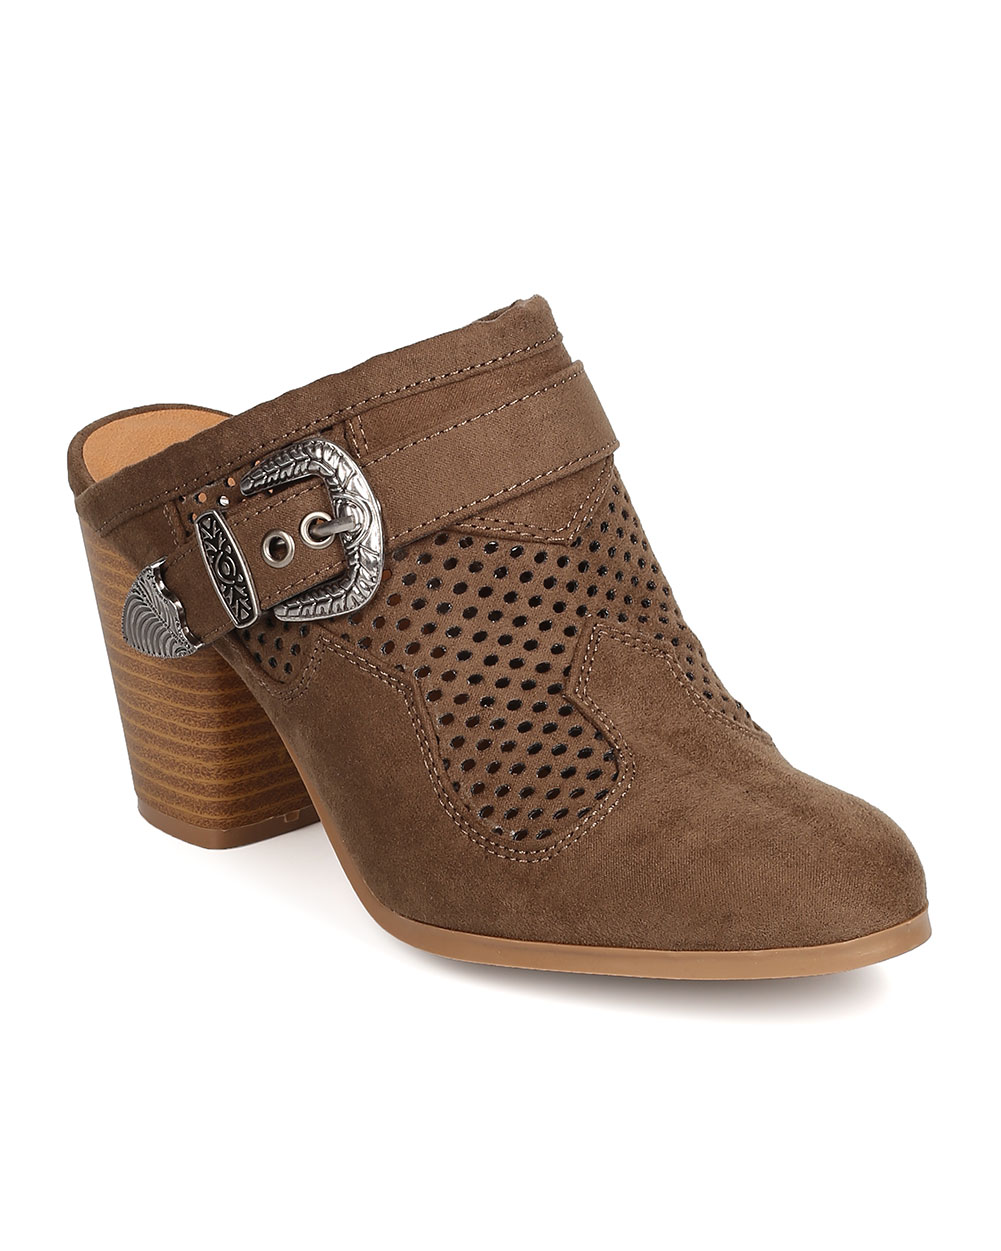 Women Faux Suede Perforated Buckled Chunky Heel Mule FD91